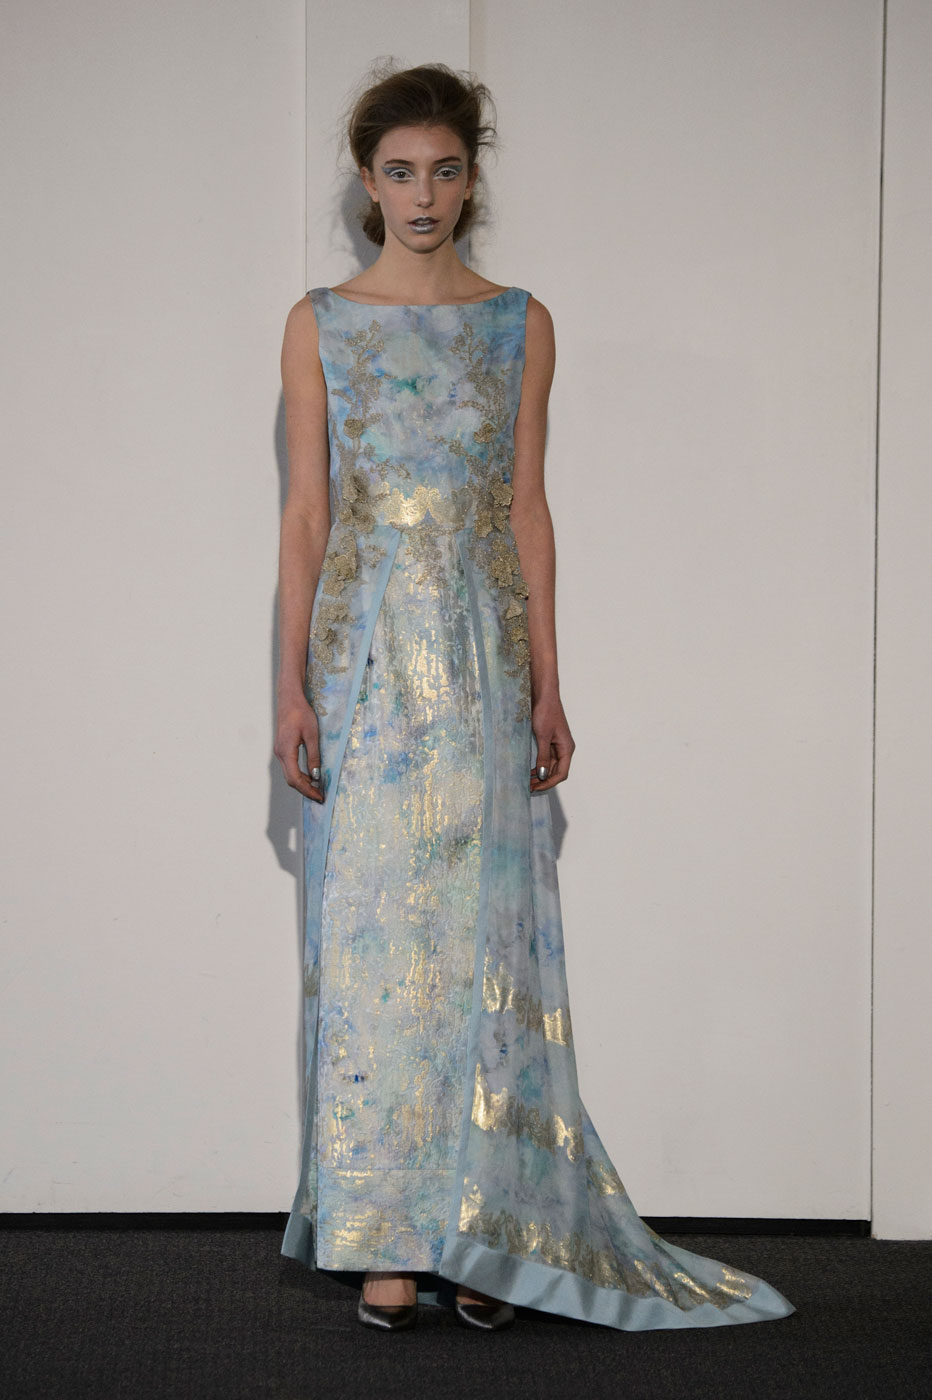 Busardi-fashion-runway-show-haute-couture-paris-spring-2015-the-impression-49